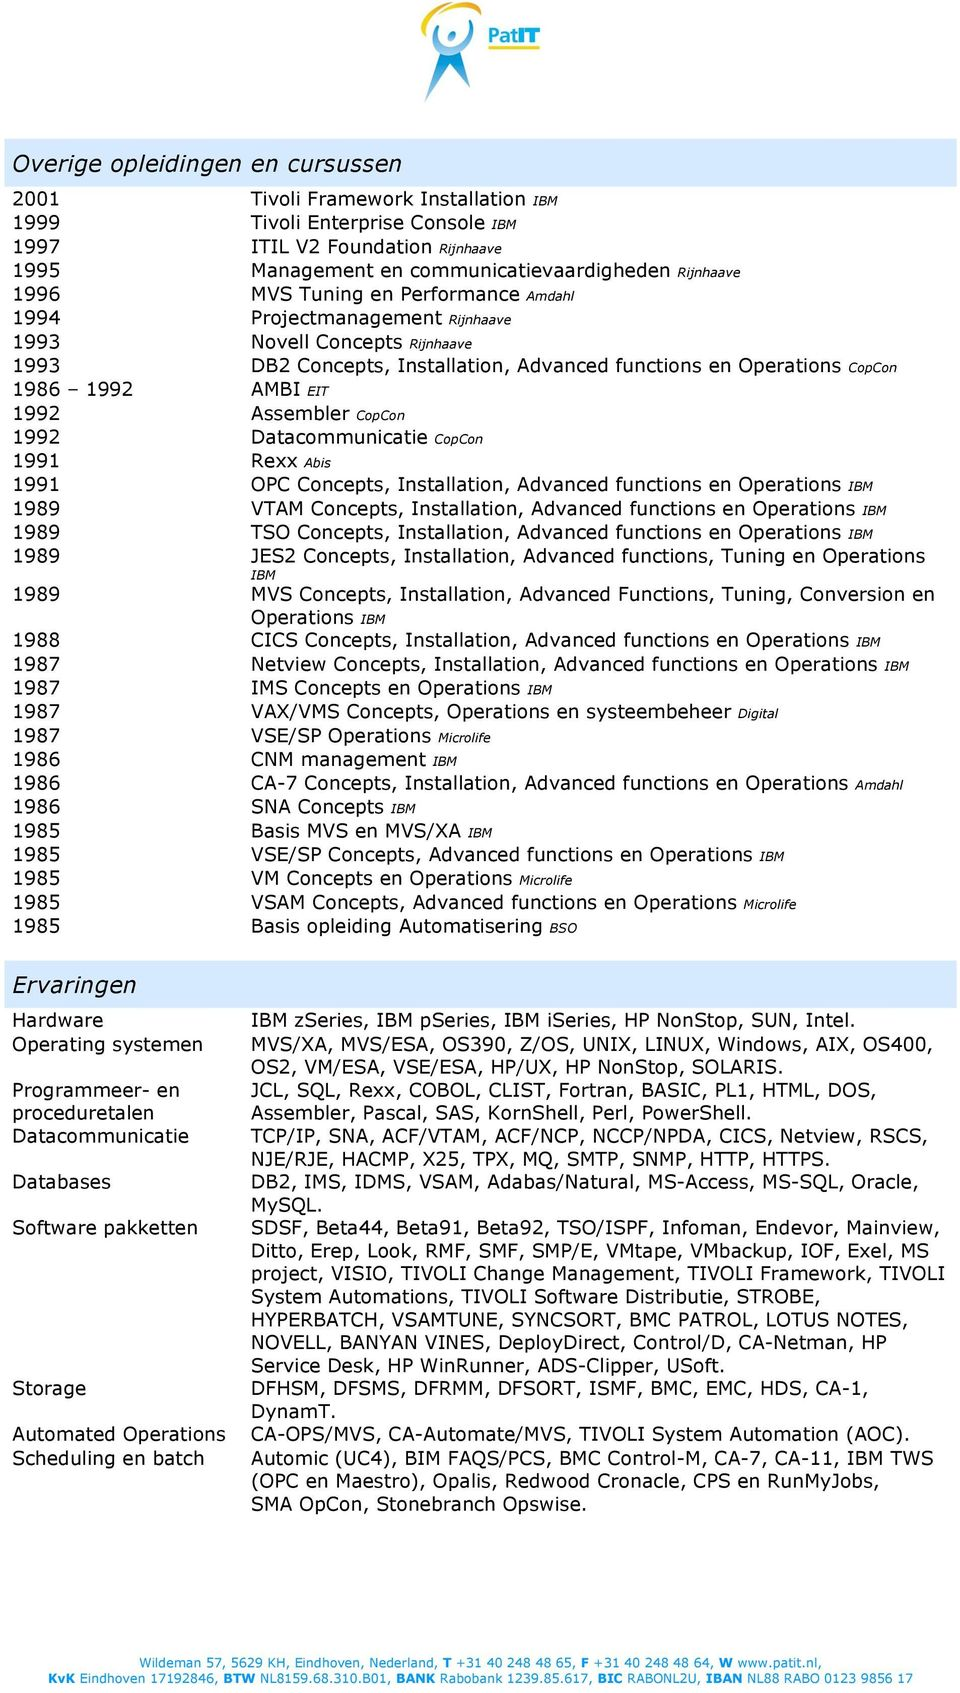 Assembler CopCon 1992 Datacommunicatie CopCon 1991 Rexx Abis 1991 OPC Concepts, Installation, Advanced functions en Operations IBM 1989 VTAM Concepts, Installation, Advanced functions en Operations